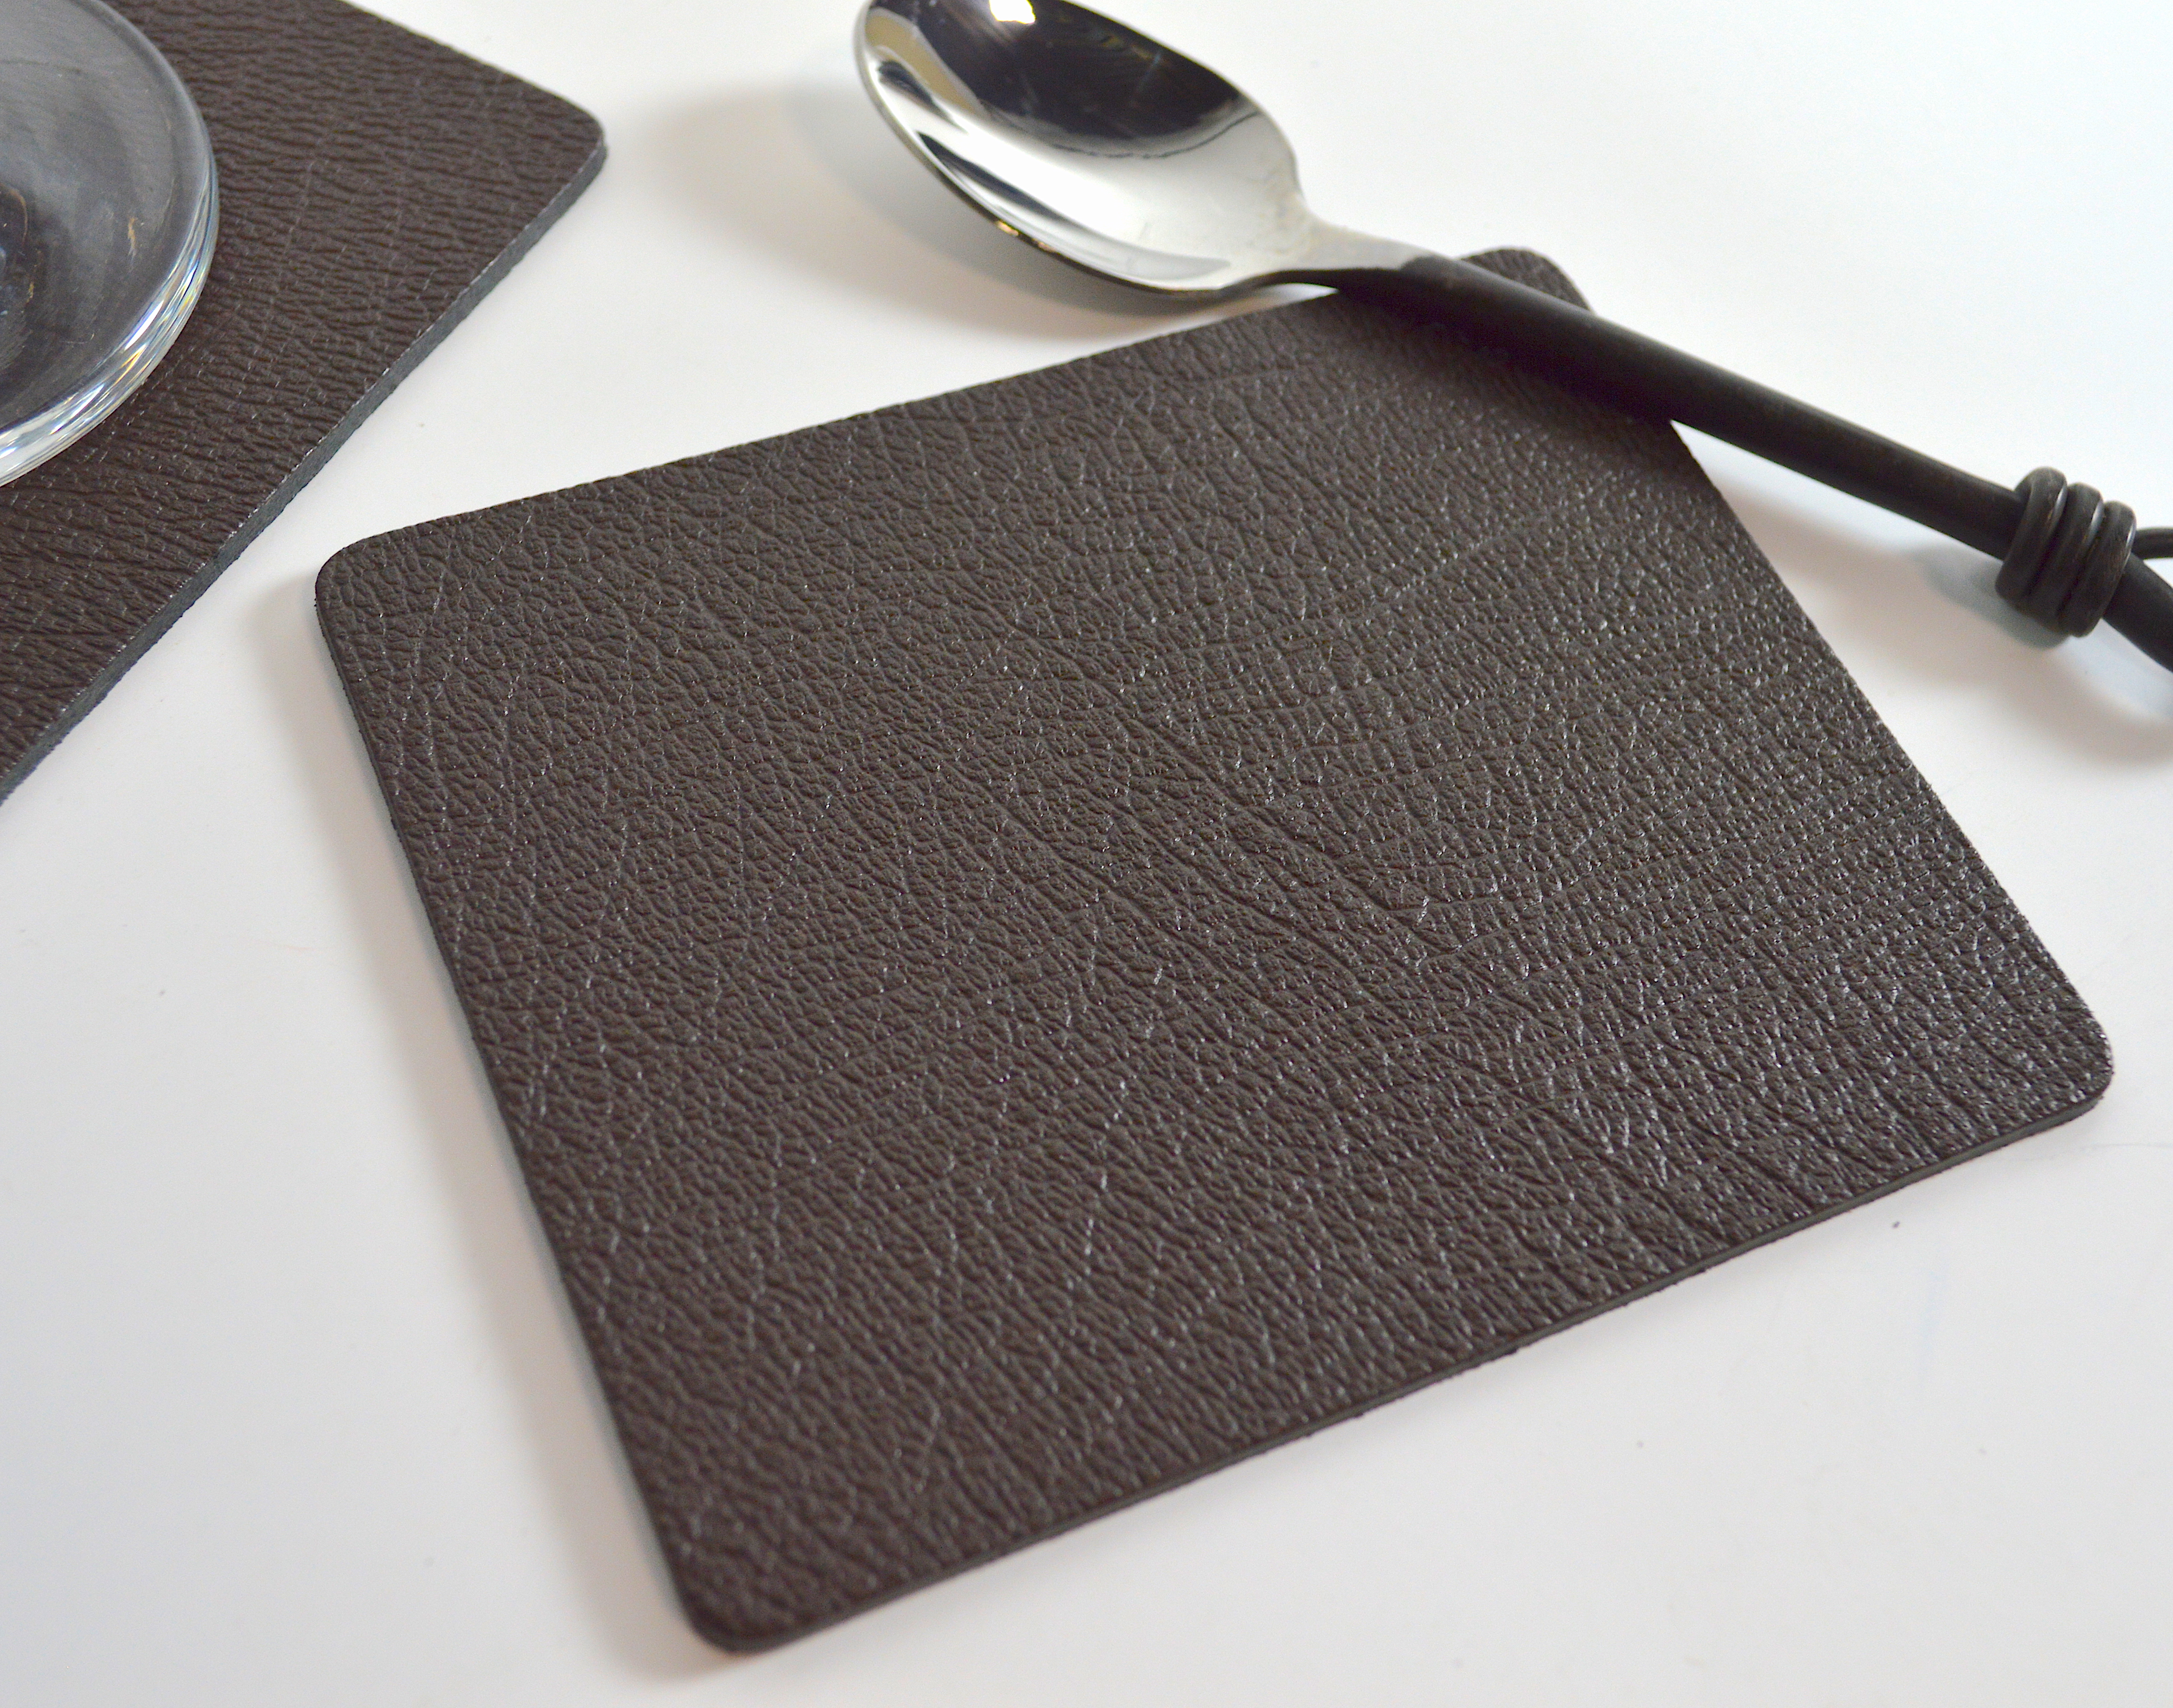 Made In UK Giftag Set of 6 Artisan Brown Bonded Leather Placemats and 6 Coasters 12 Piece Set